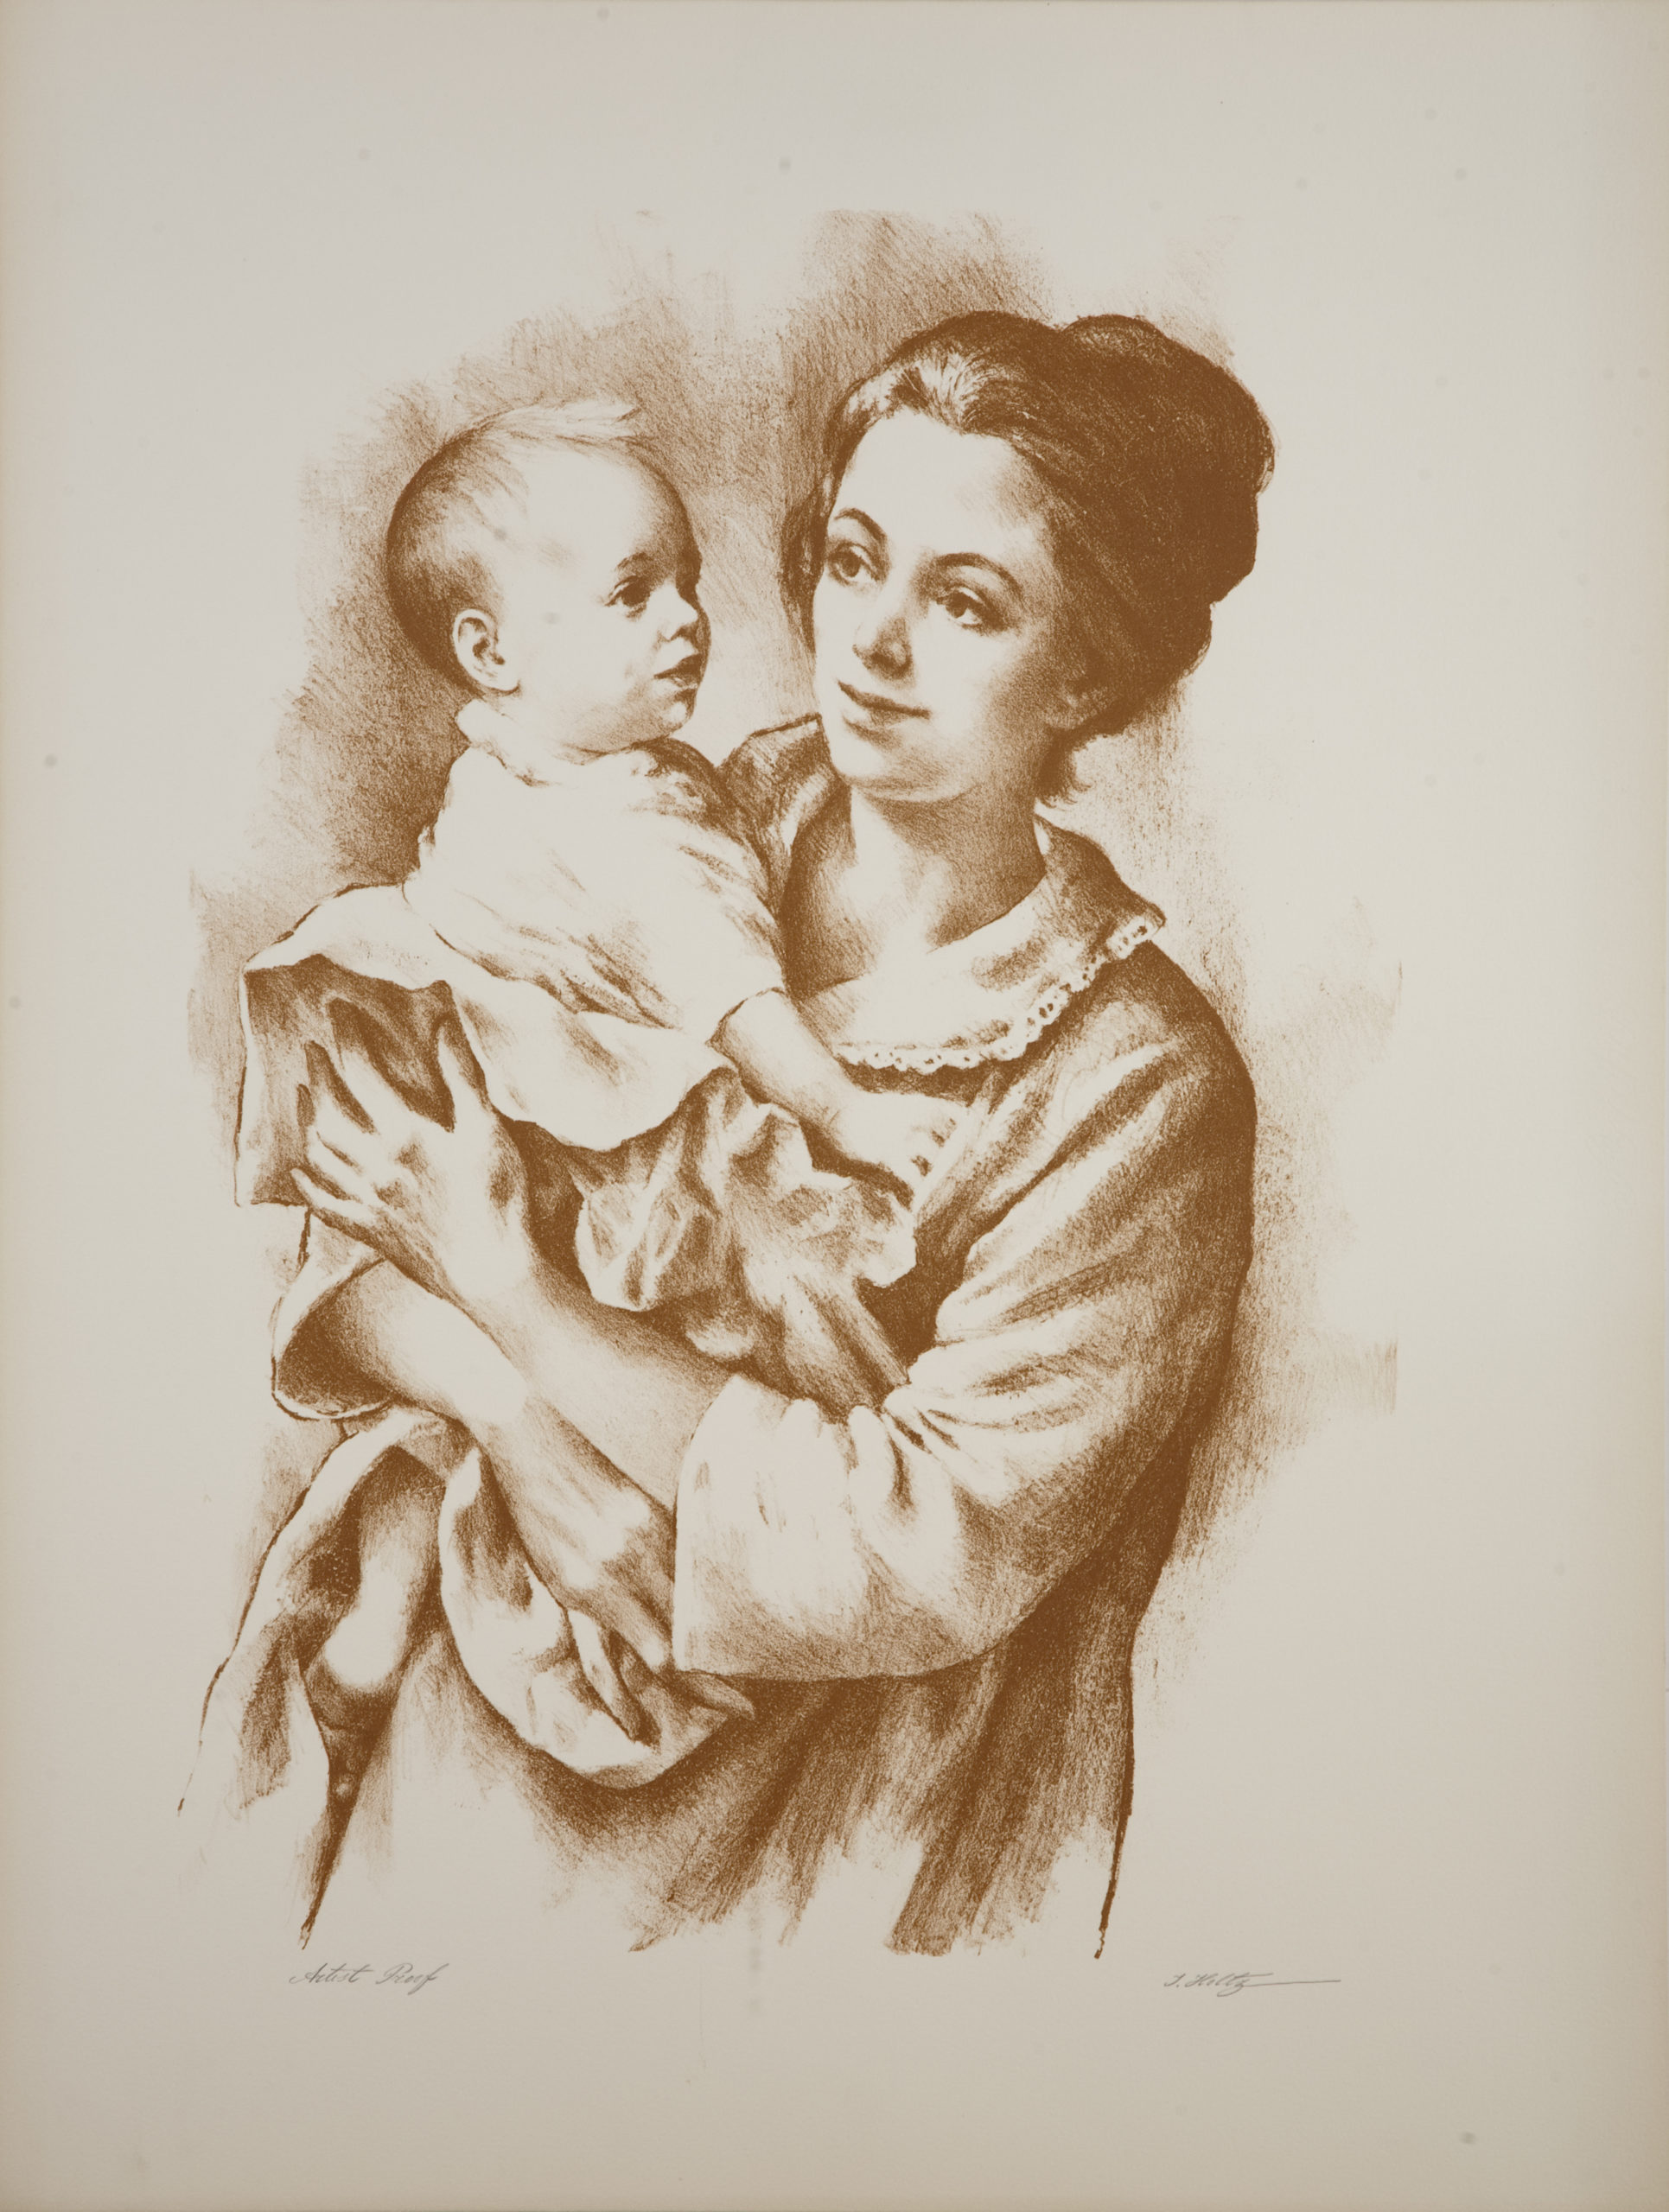 L01S Mother & Child - Sepia - Lithograph - 22 x 29 - No Frame - $500